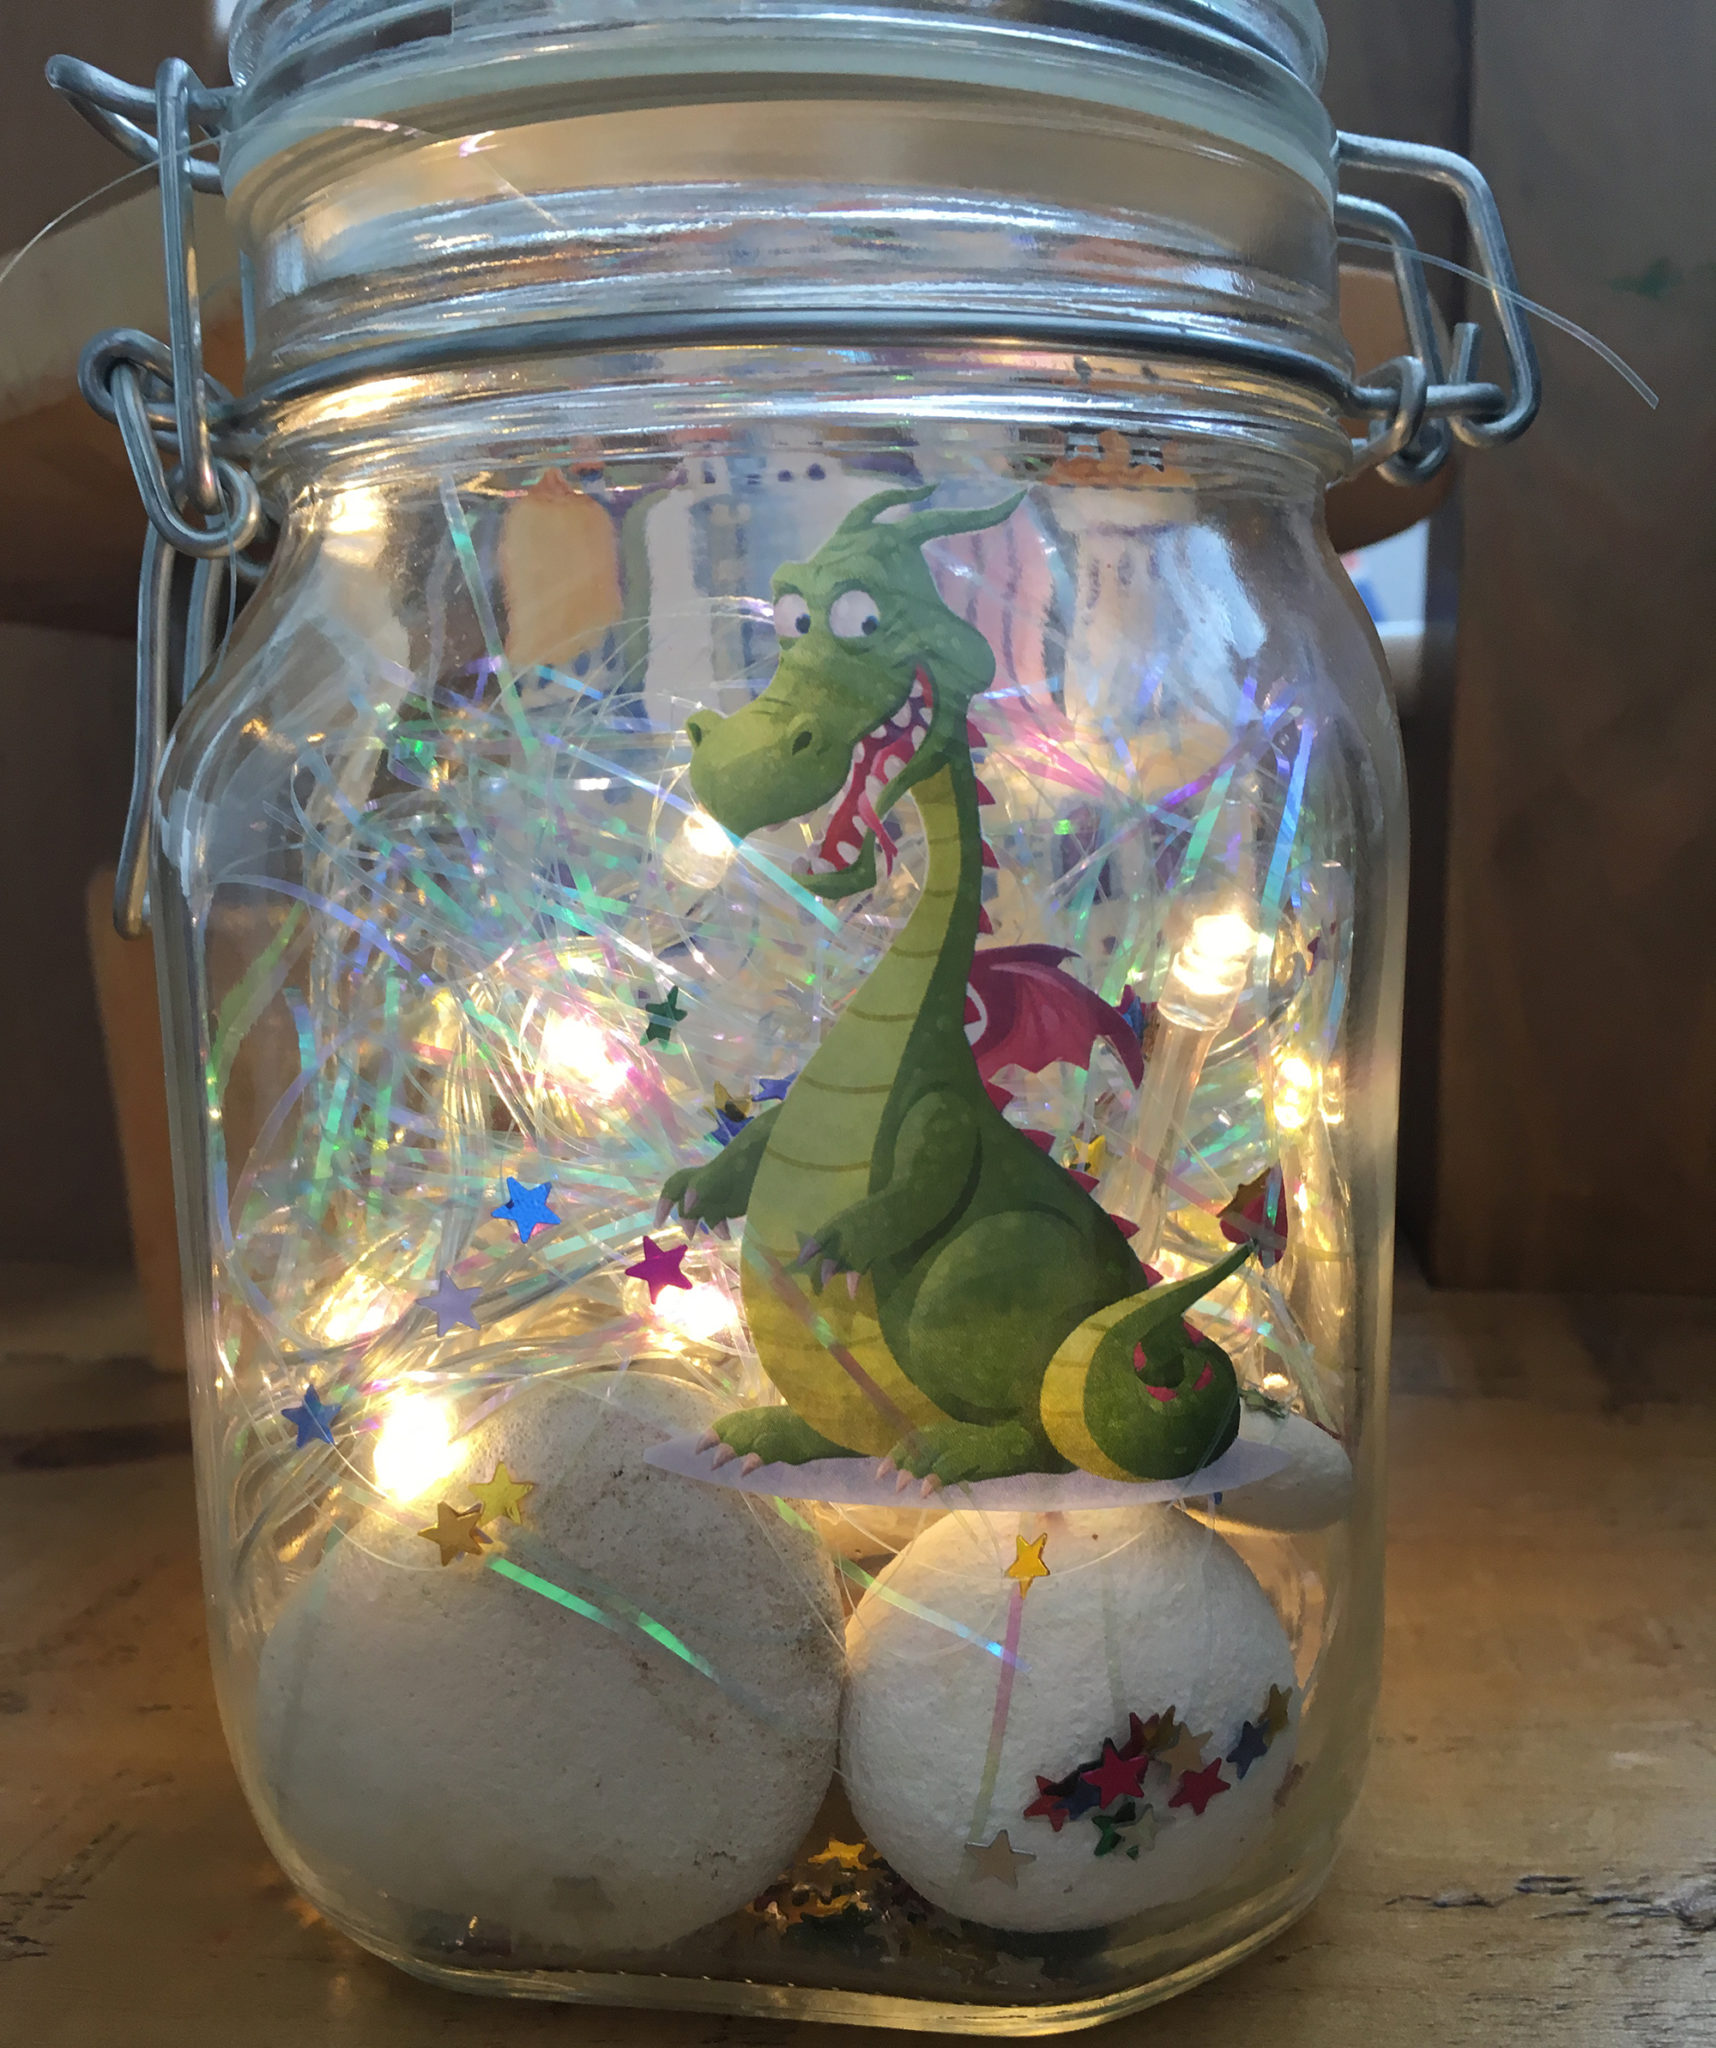 Roald Dahl Inspired Small World Dream Jars Tts Inspiration